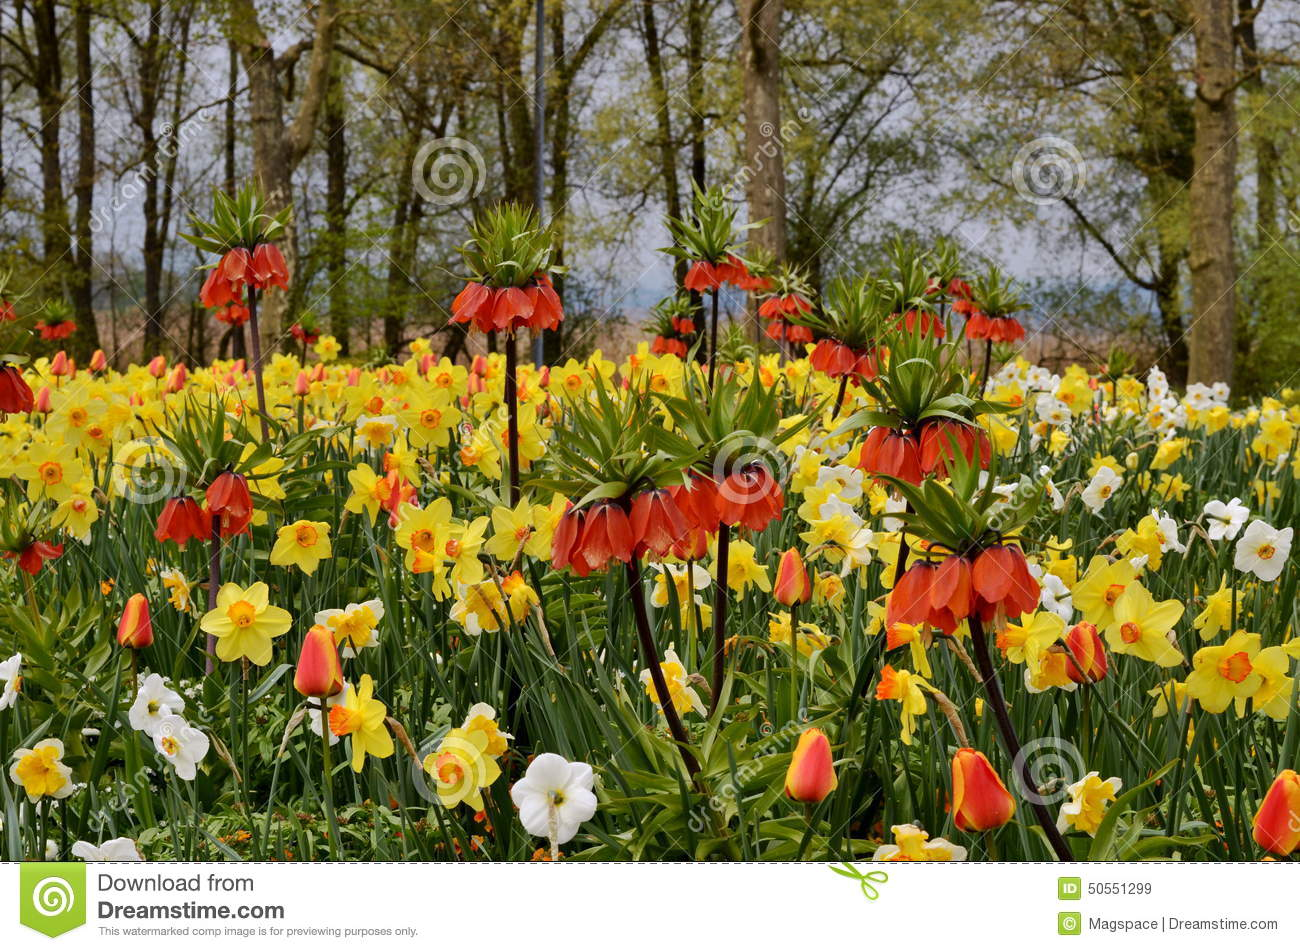 Yellow Daffodils In Spring Stock Photo - Image: 50551299